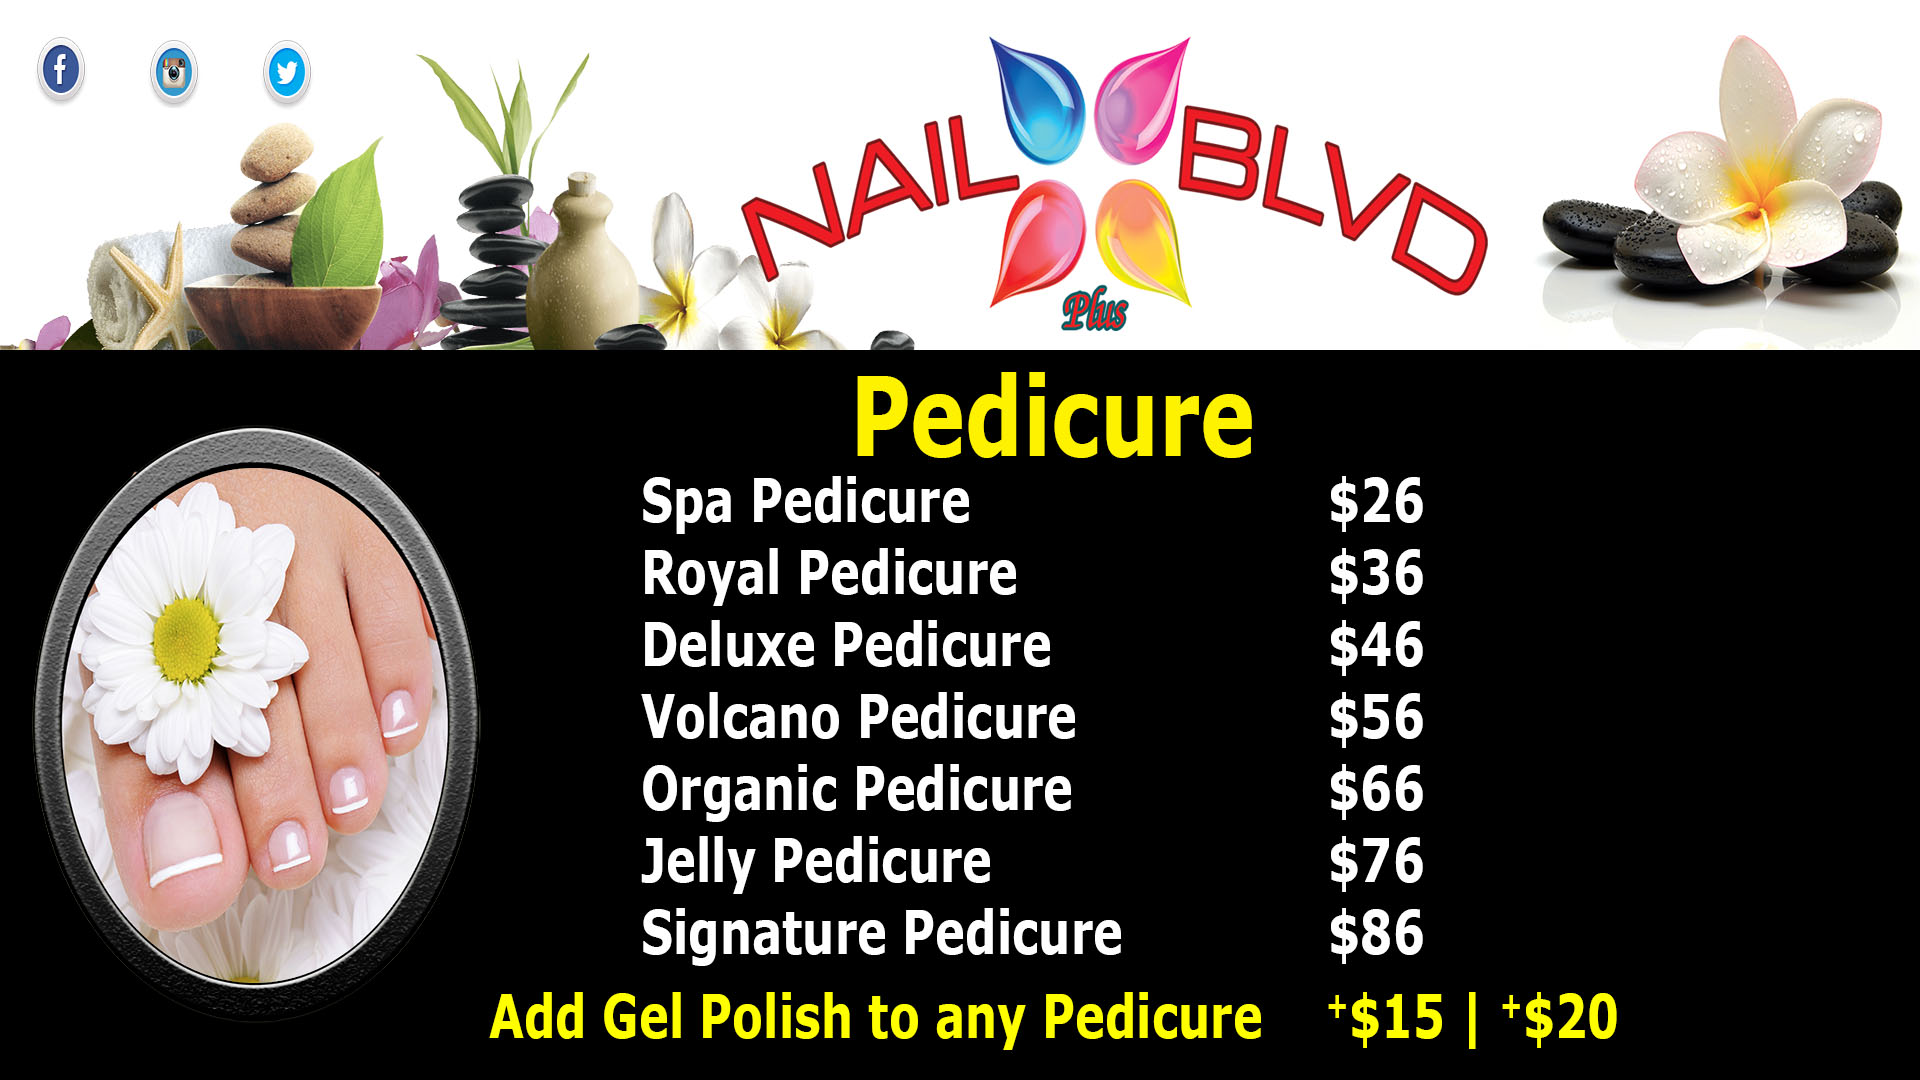 Nail Blvd Plus | Welcome